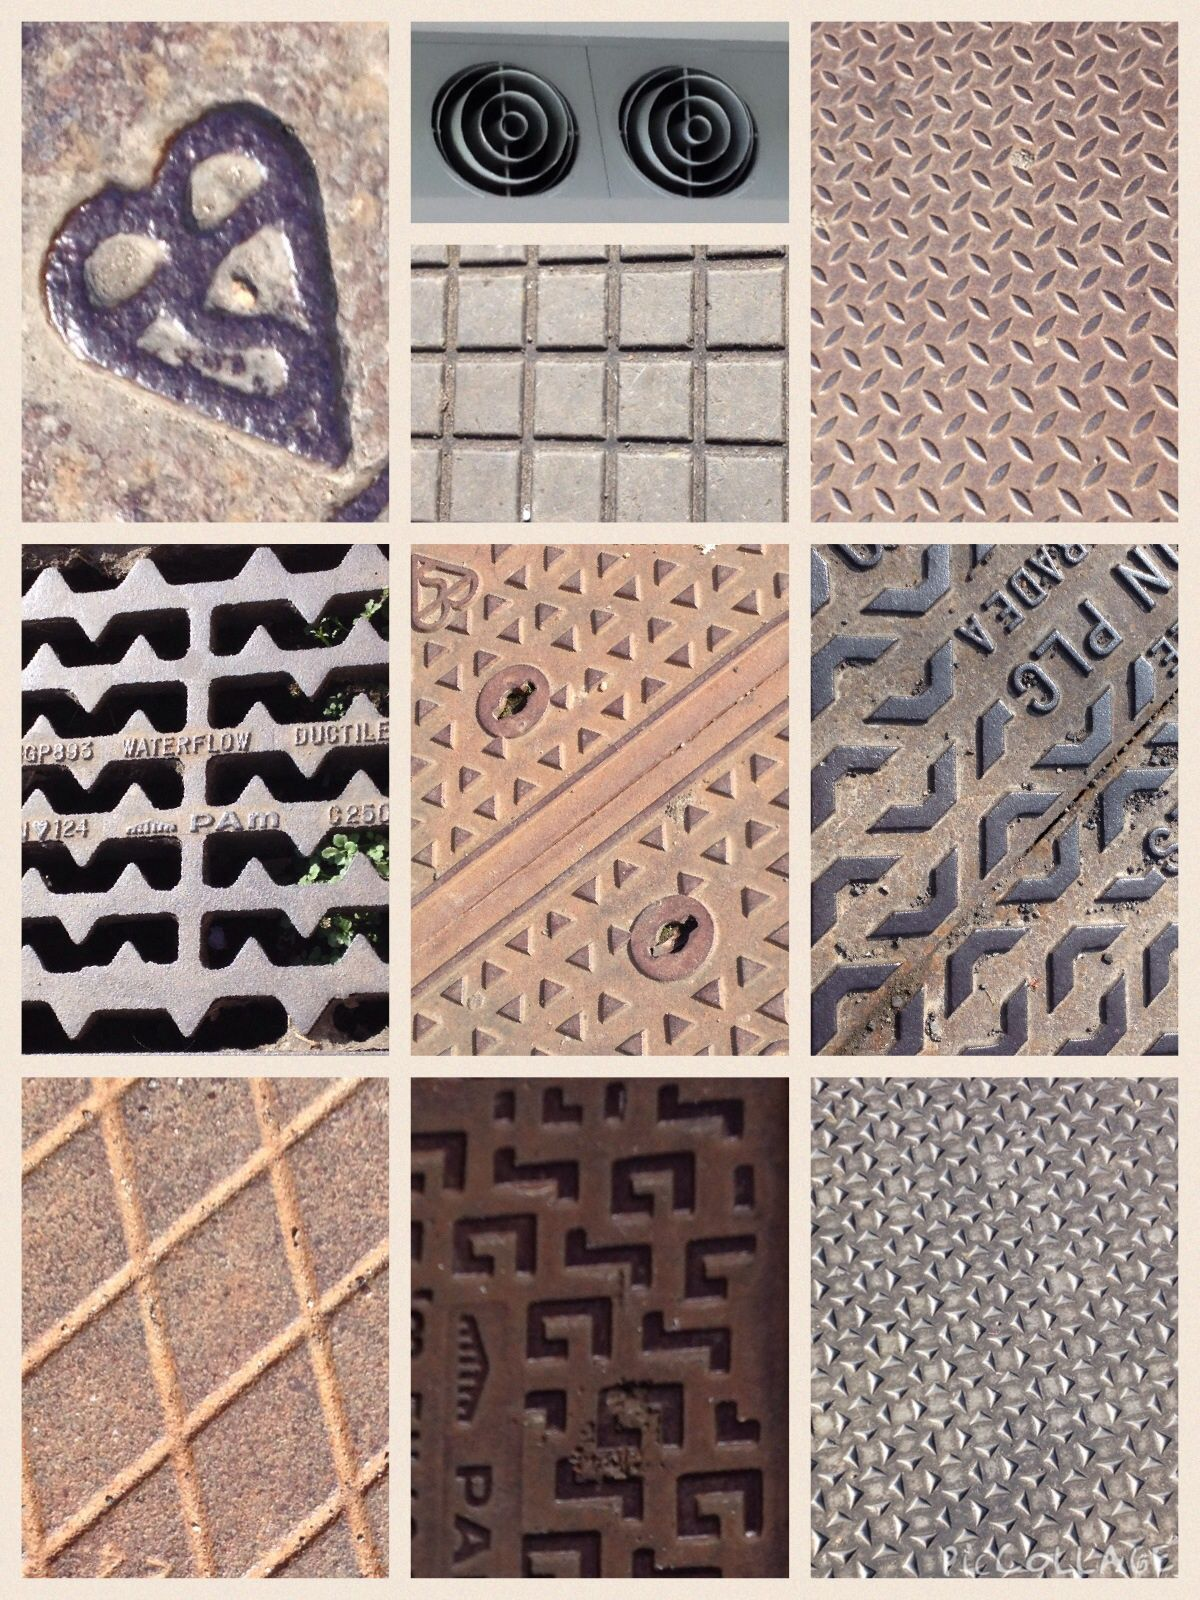 Drain covers inspired me for pattern repeats while out shopping